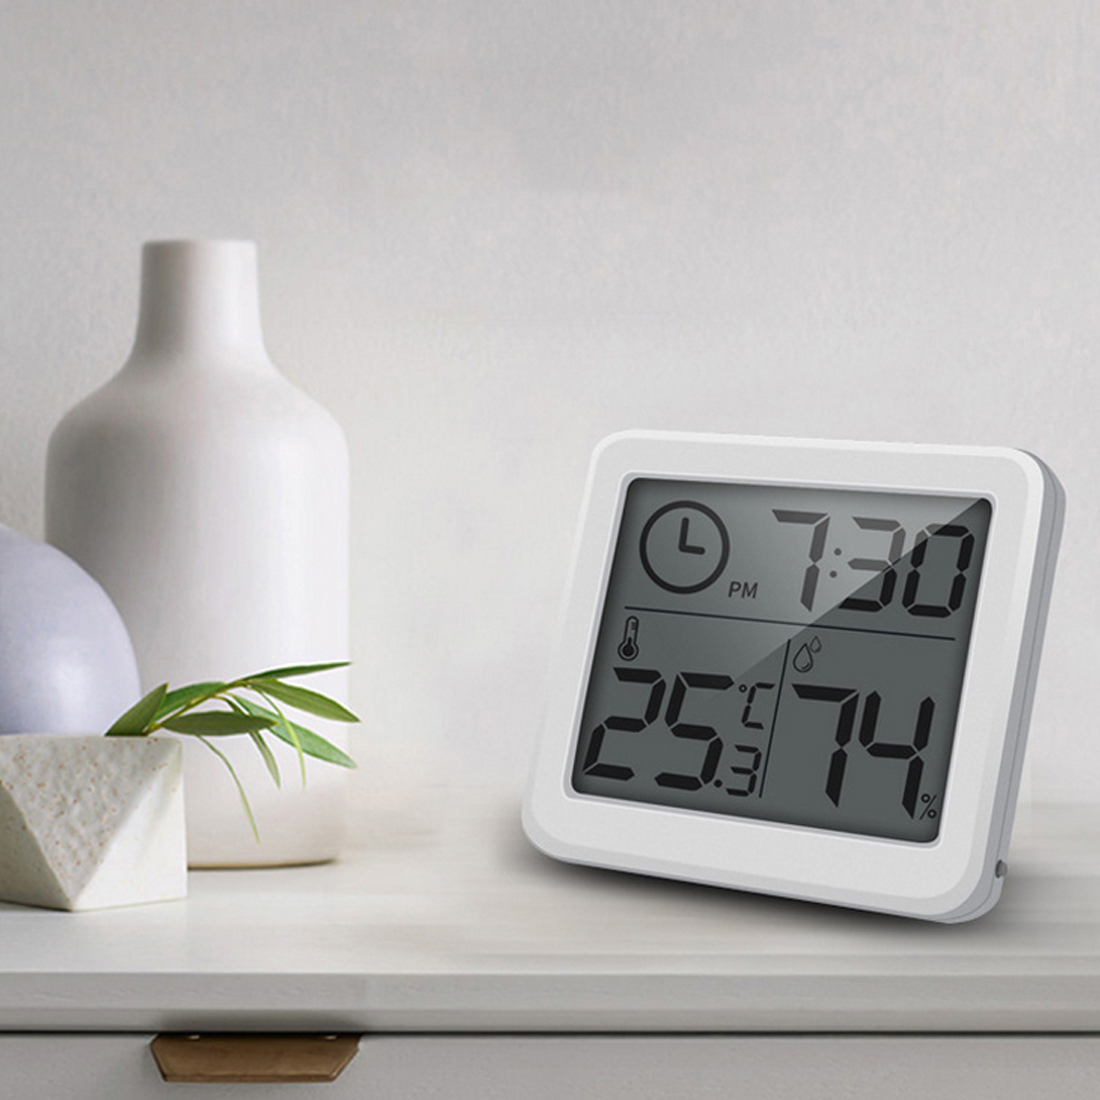 LCD Electronic Digital Temperature Humidity Meter Indoor Outdoor Automatic Thermometer Hygrometer Weather Station Clock